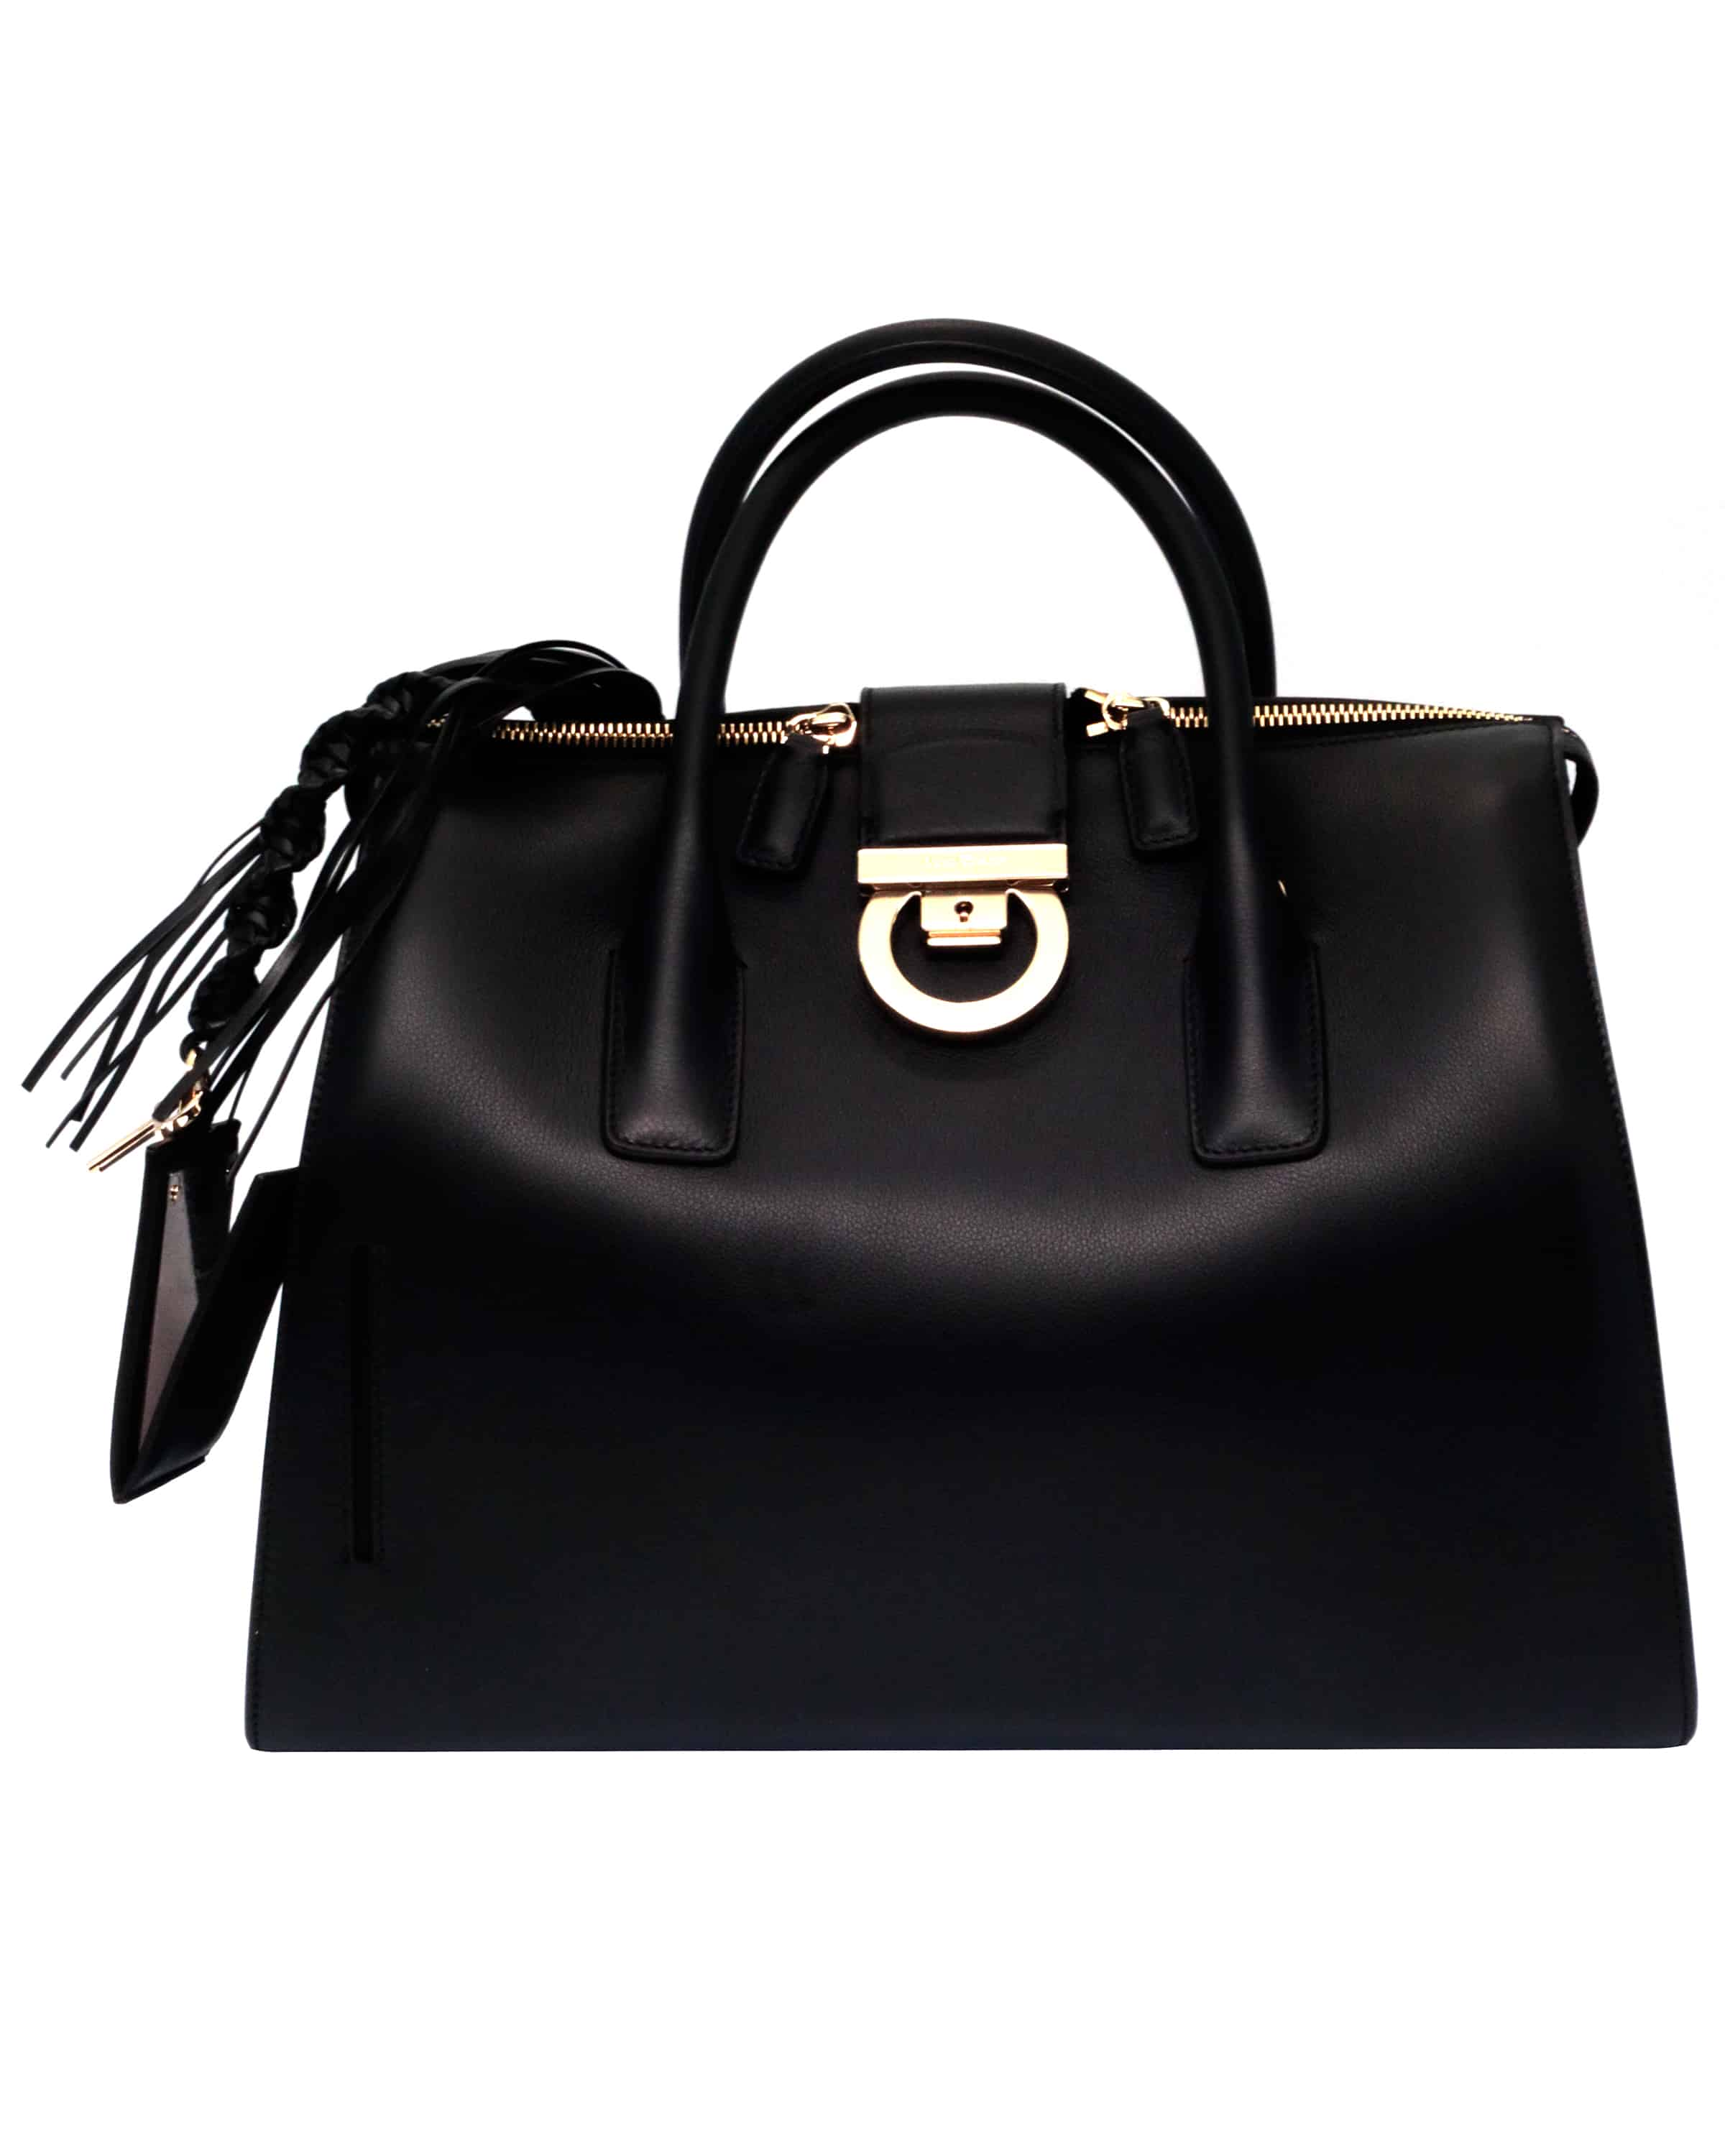 Ferragamo - Gancini Lock Doctor Bag Black 21H141-694003